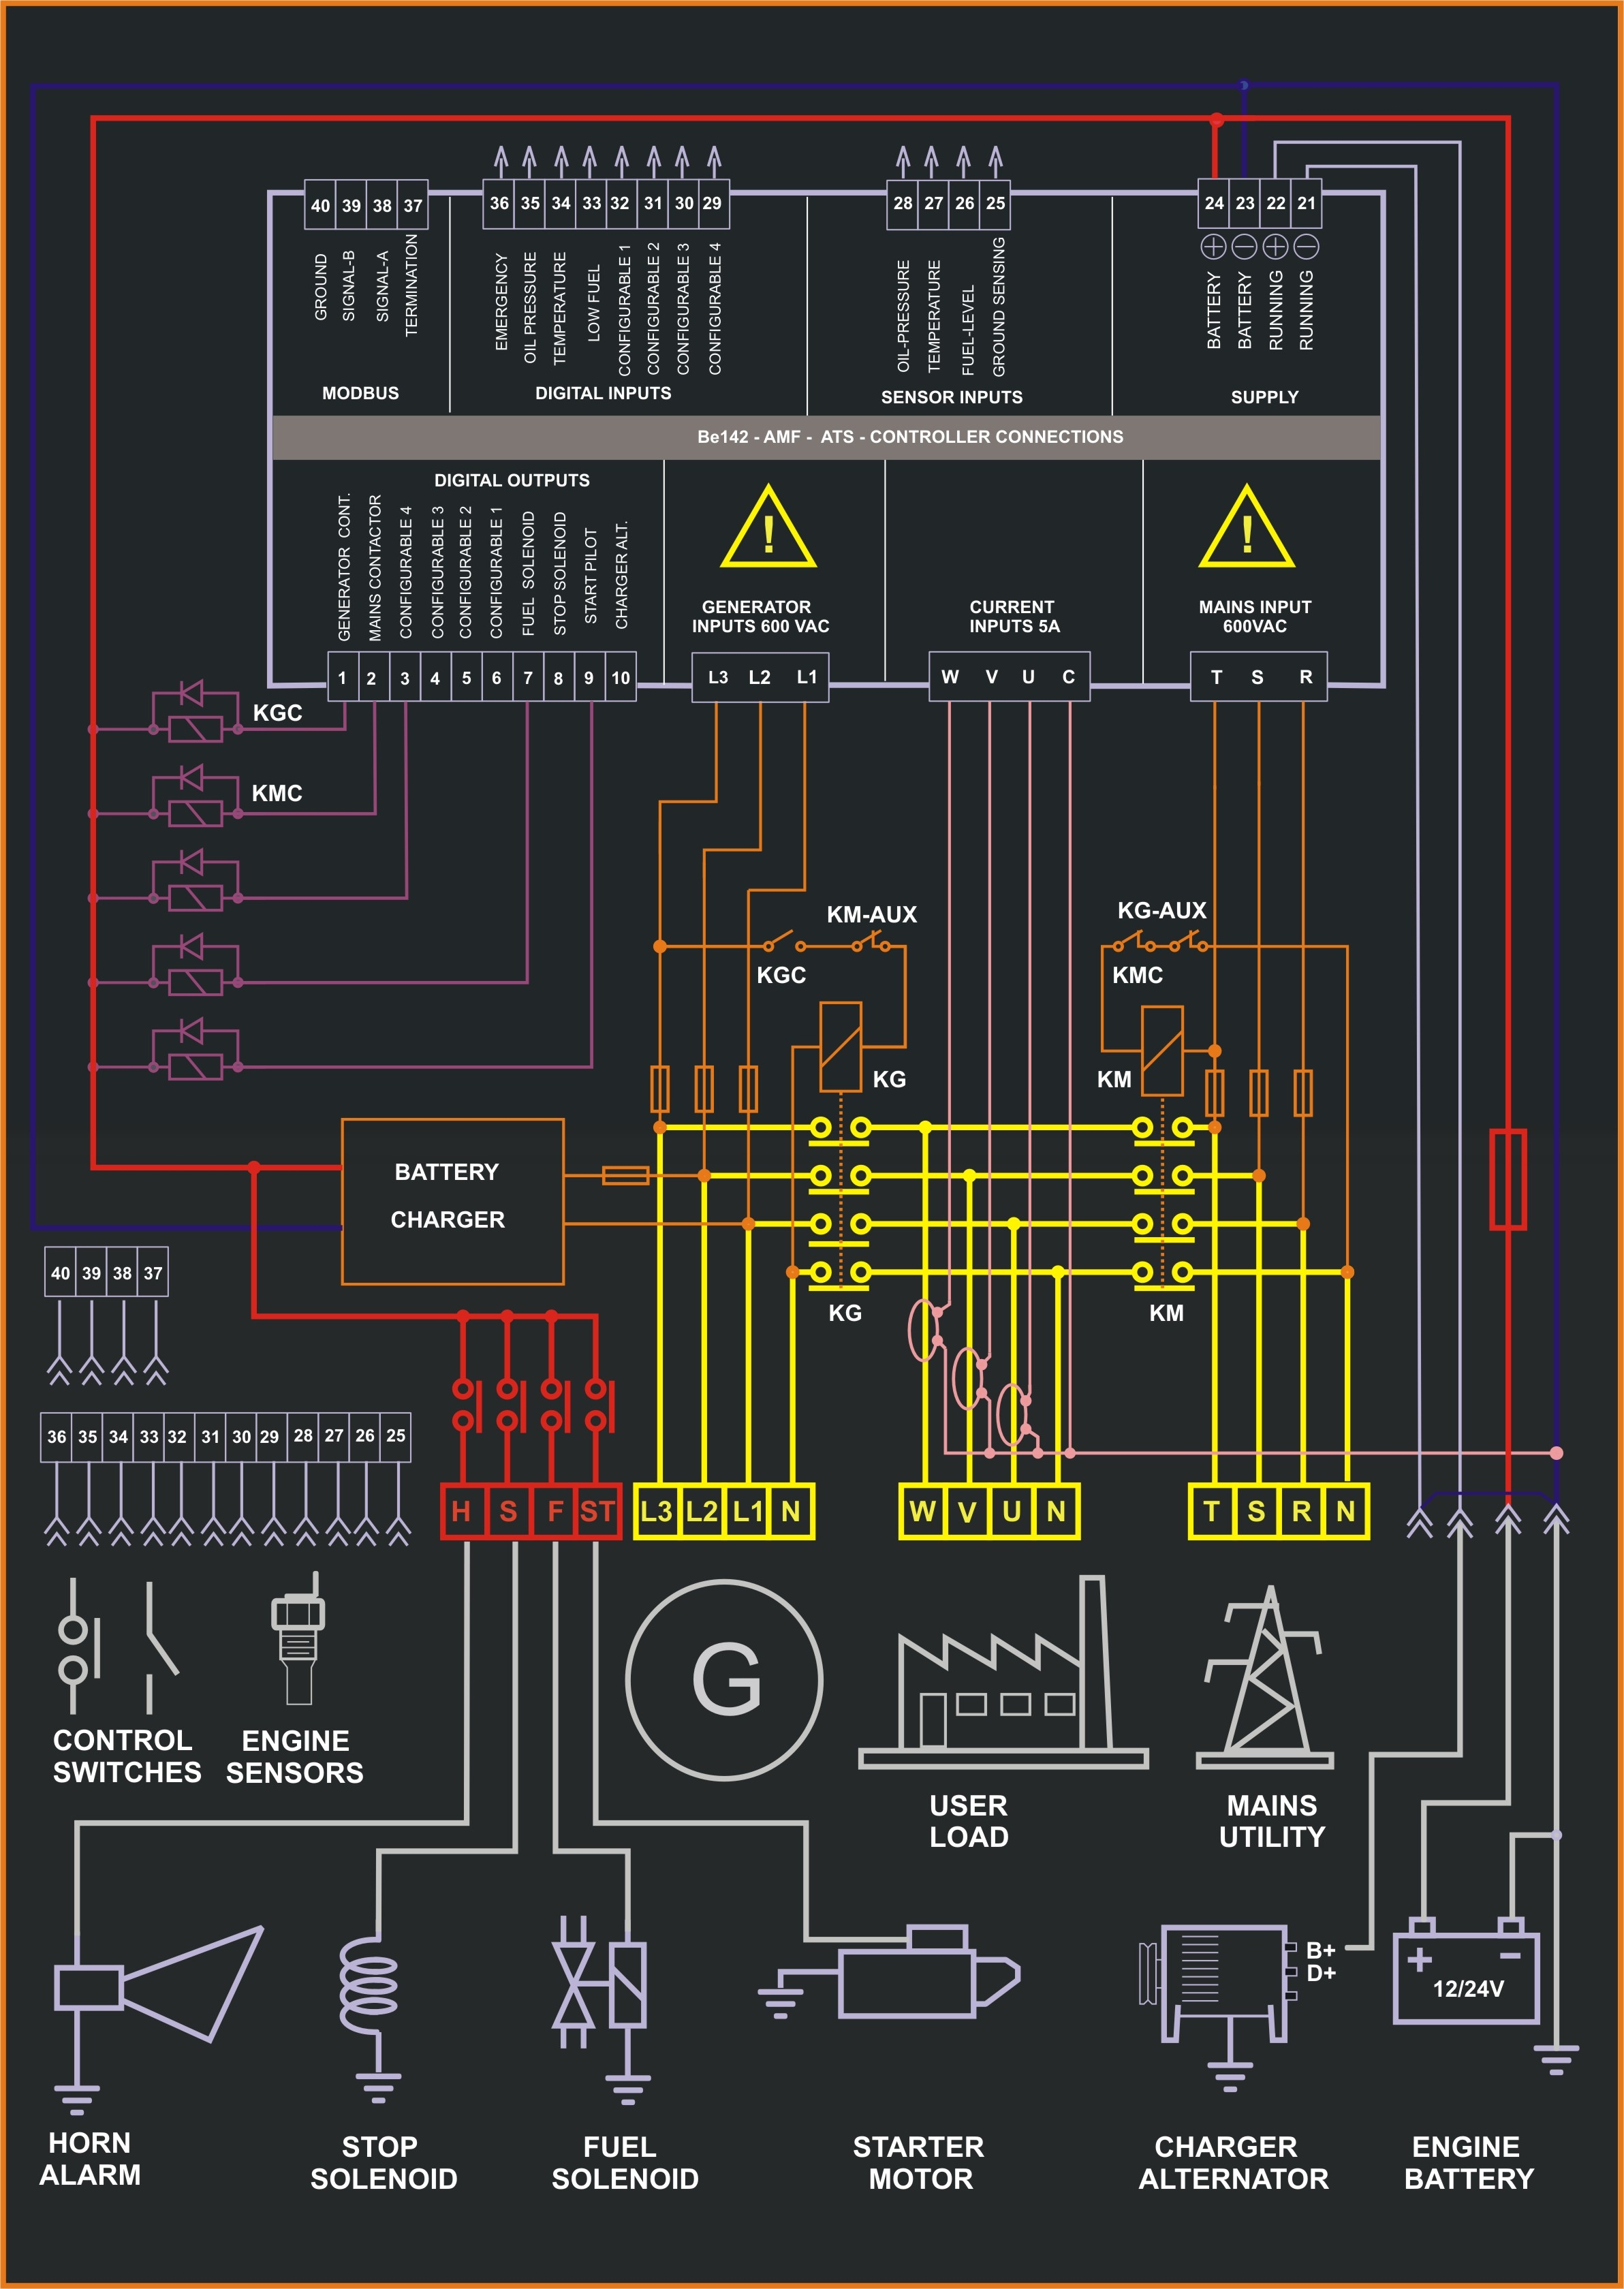 Plc Panel Wiring Diagram - Today Wiring Schematic Diagram